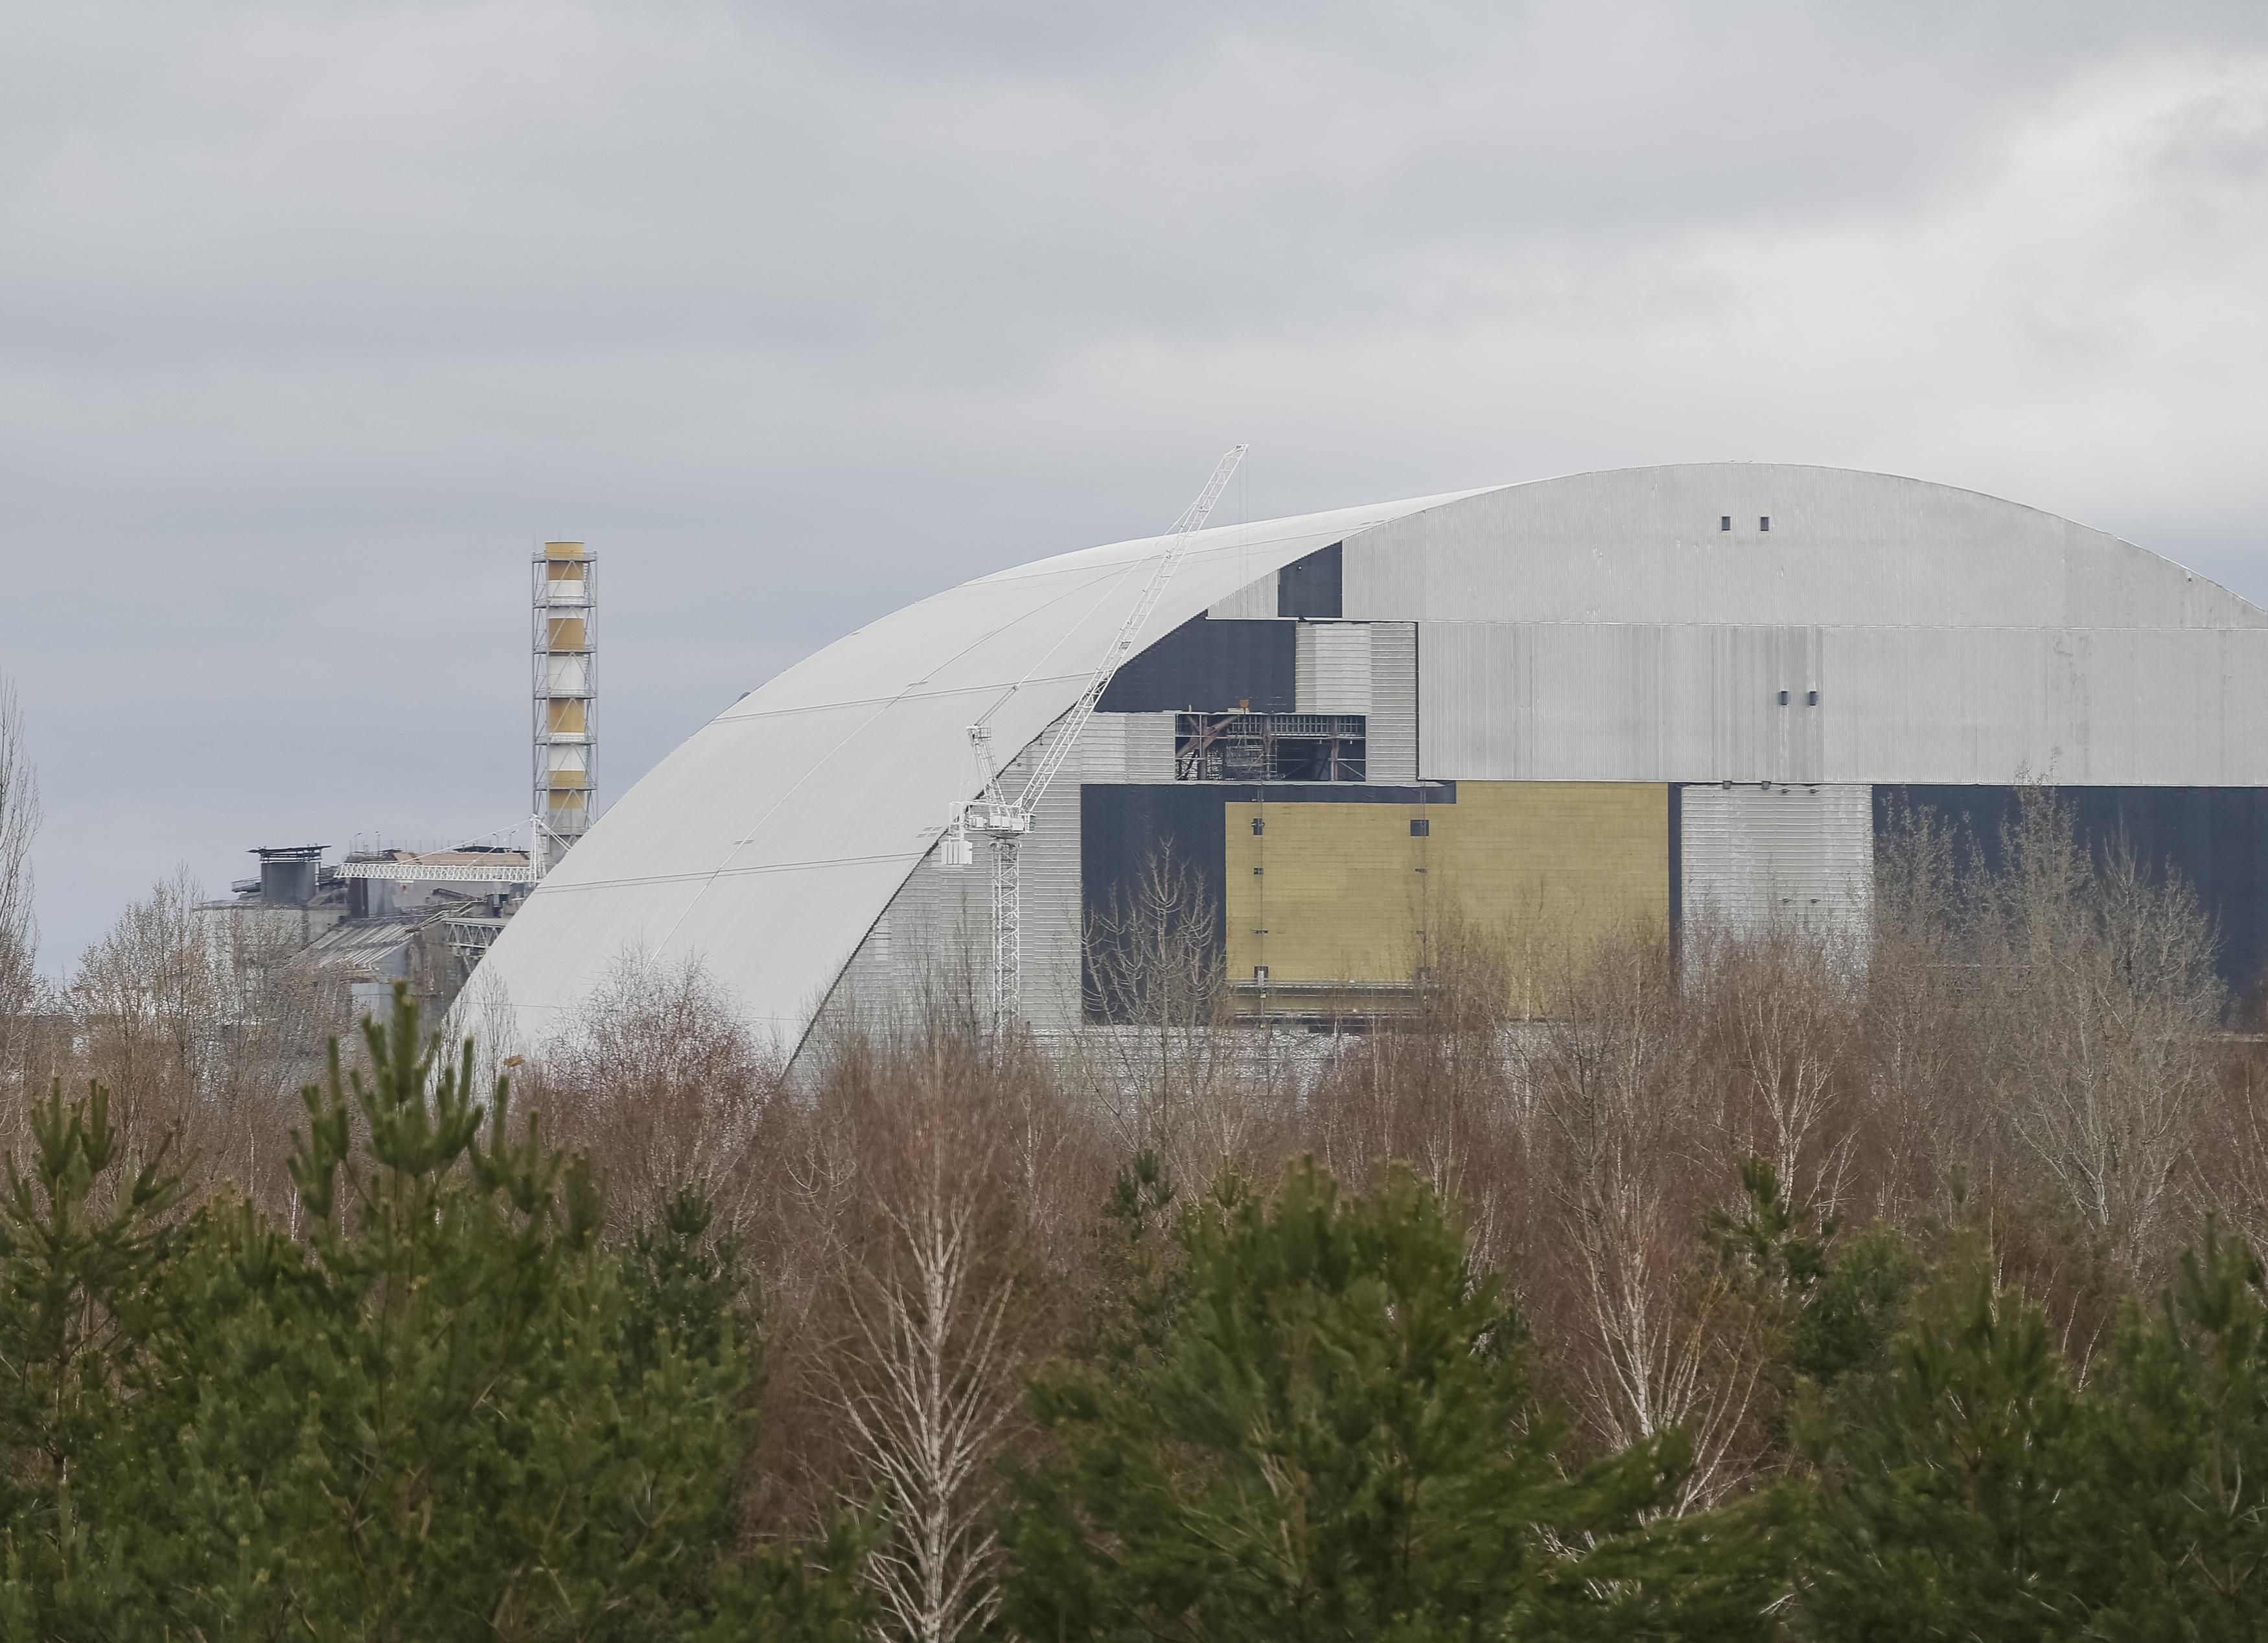 Chernobyl 30 Years On: Work On Giant Confinement Structure